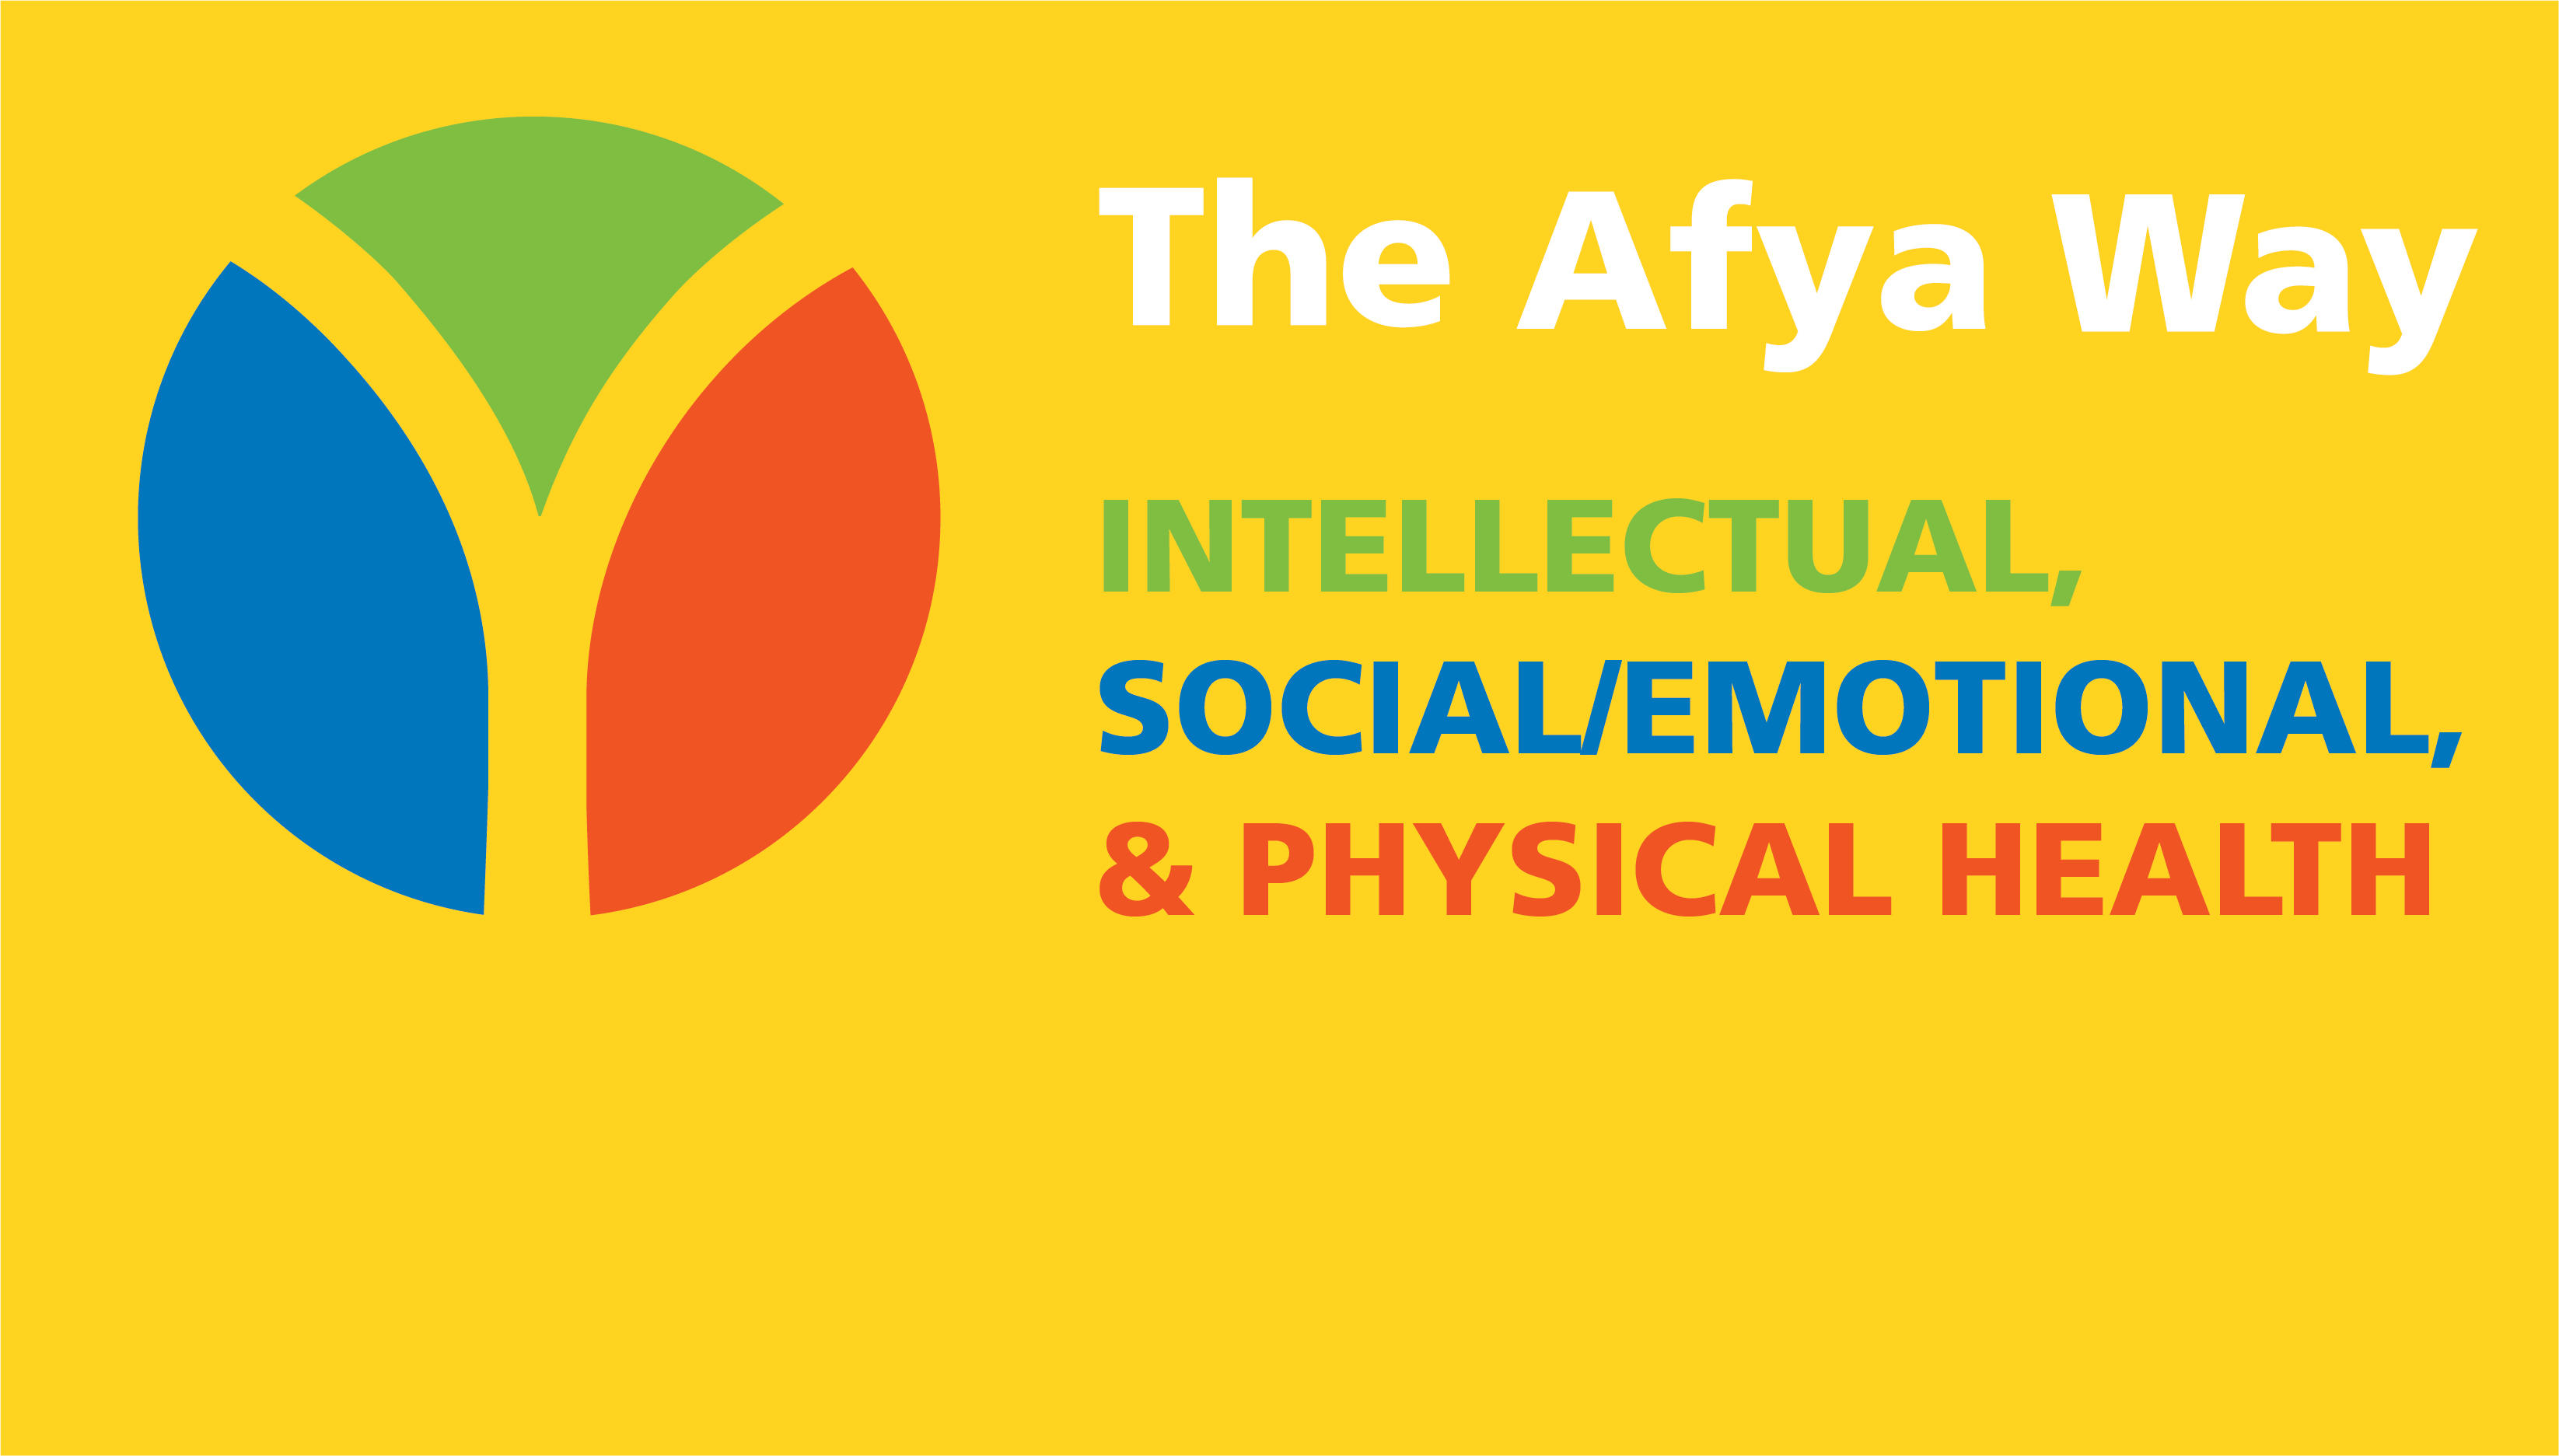 The Afya Way Intellectual, Social/Emotional & Physical Health